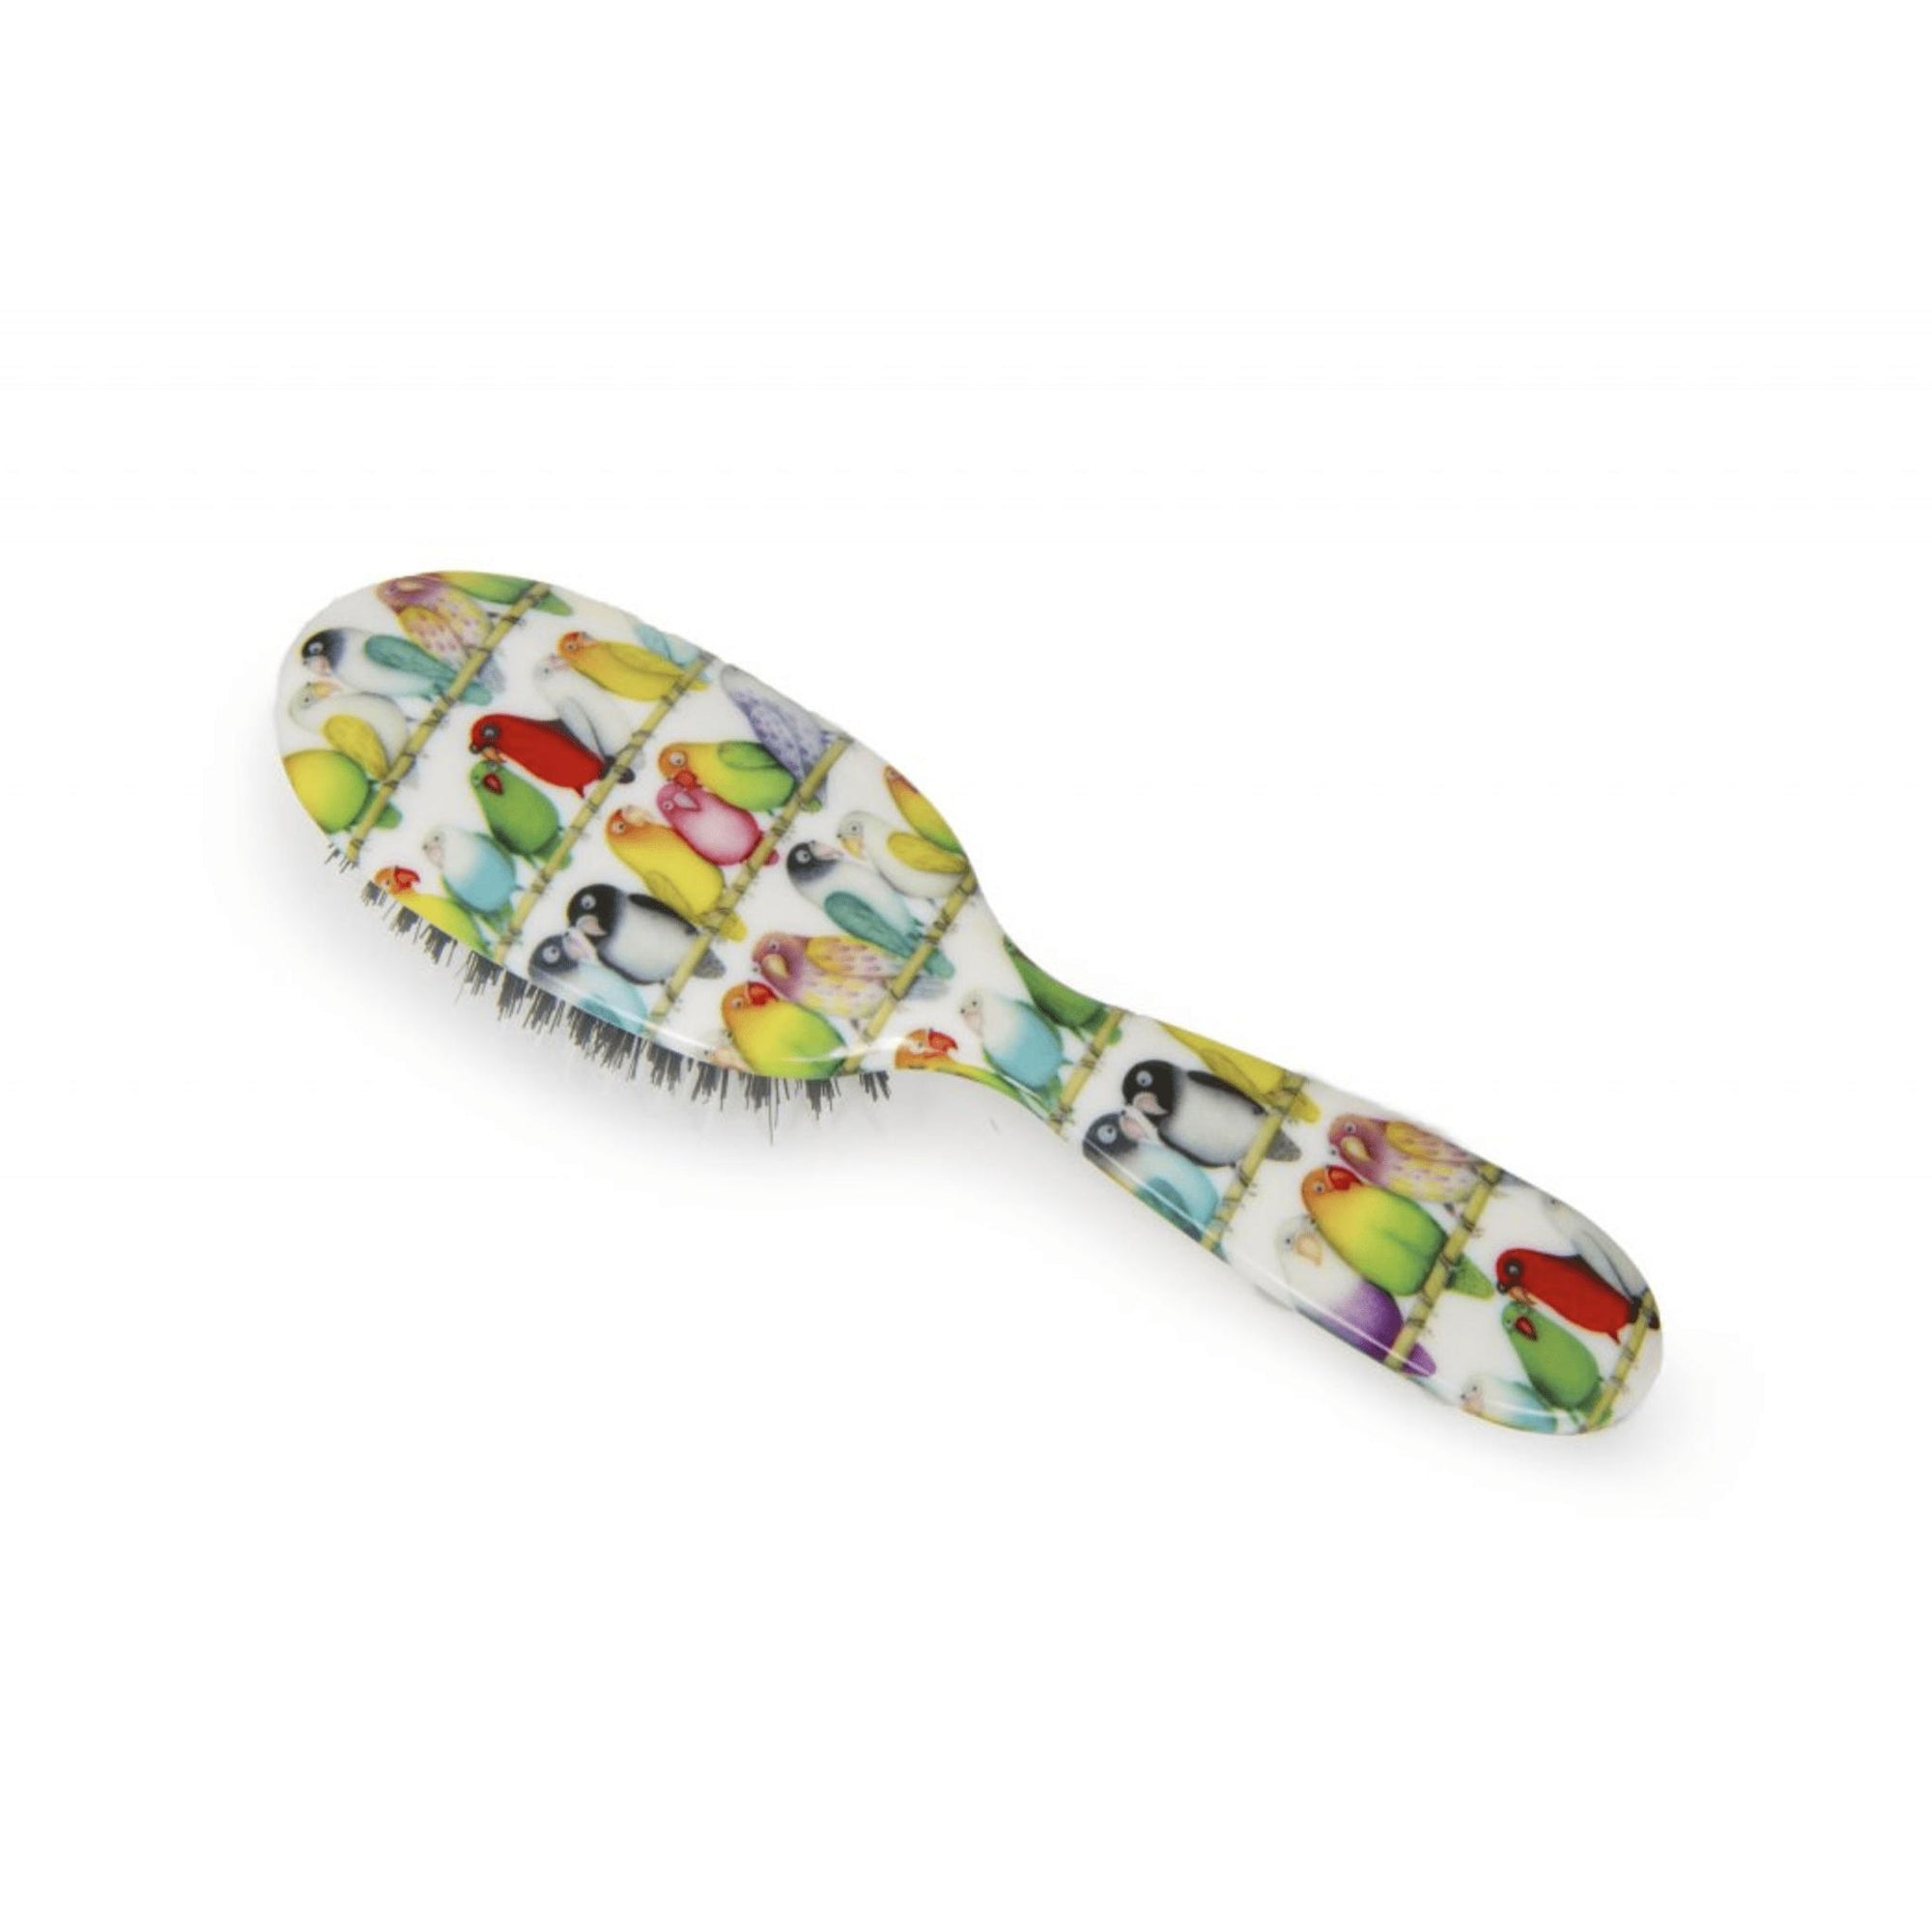 Natural Bristle Hairbrush Lovebirds-Hairbrushes and combs-Rock & Ruddle-Large-Tegen Accessories